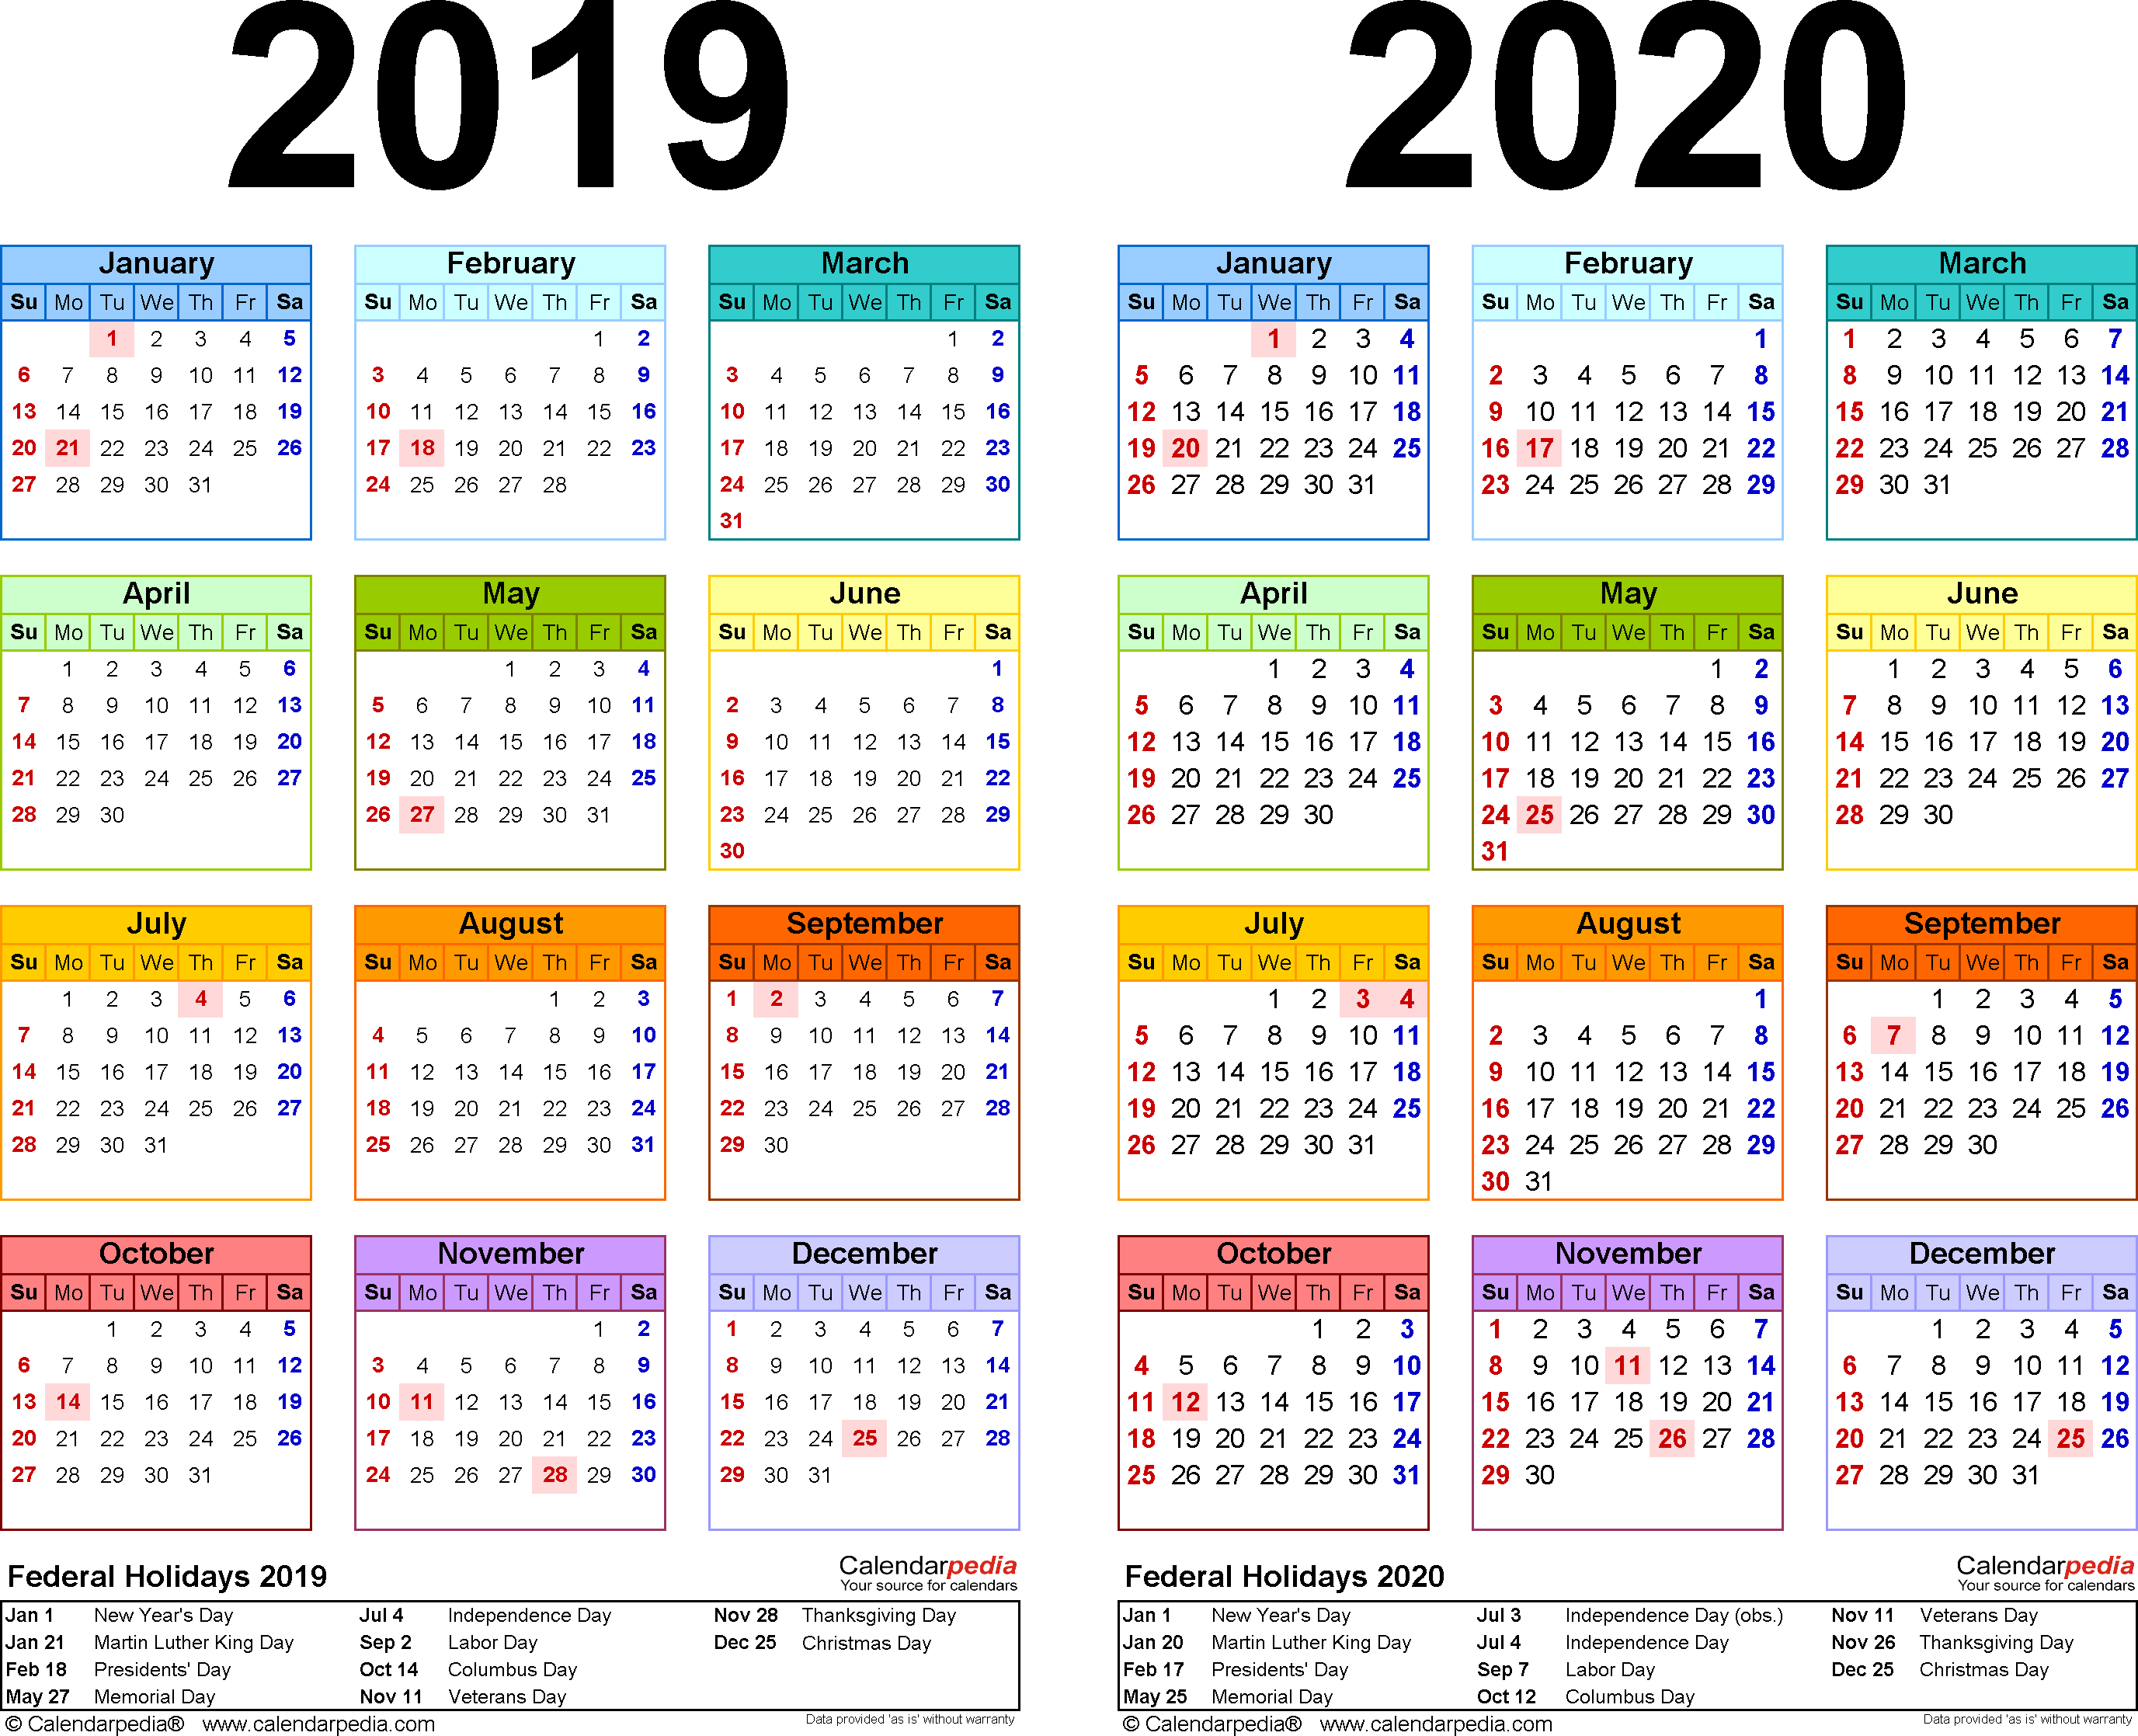 2019-2020 Calendar - Free Printable Two-Year Excel Calendars within U Of M School Year 2019-2020